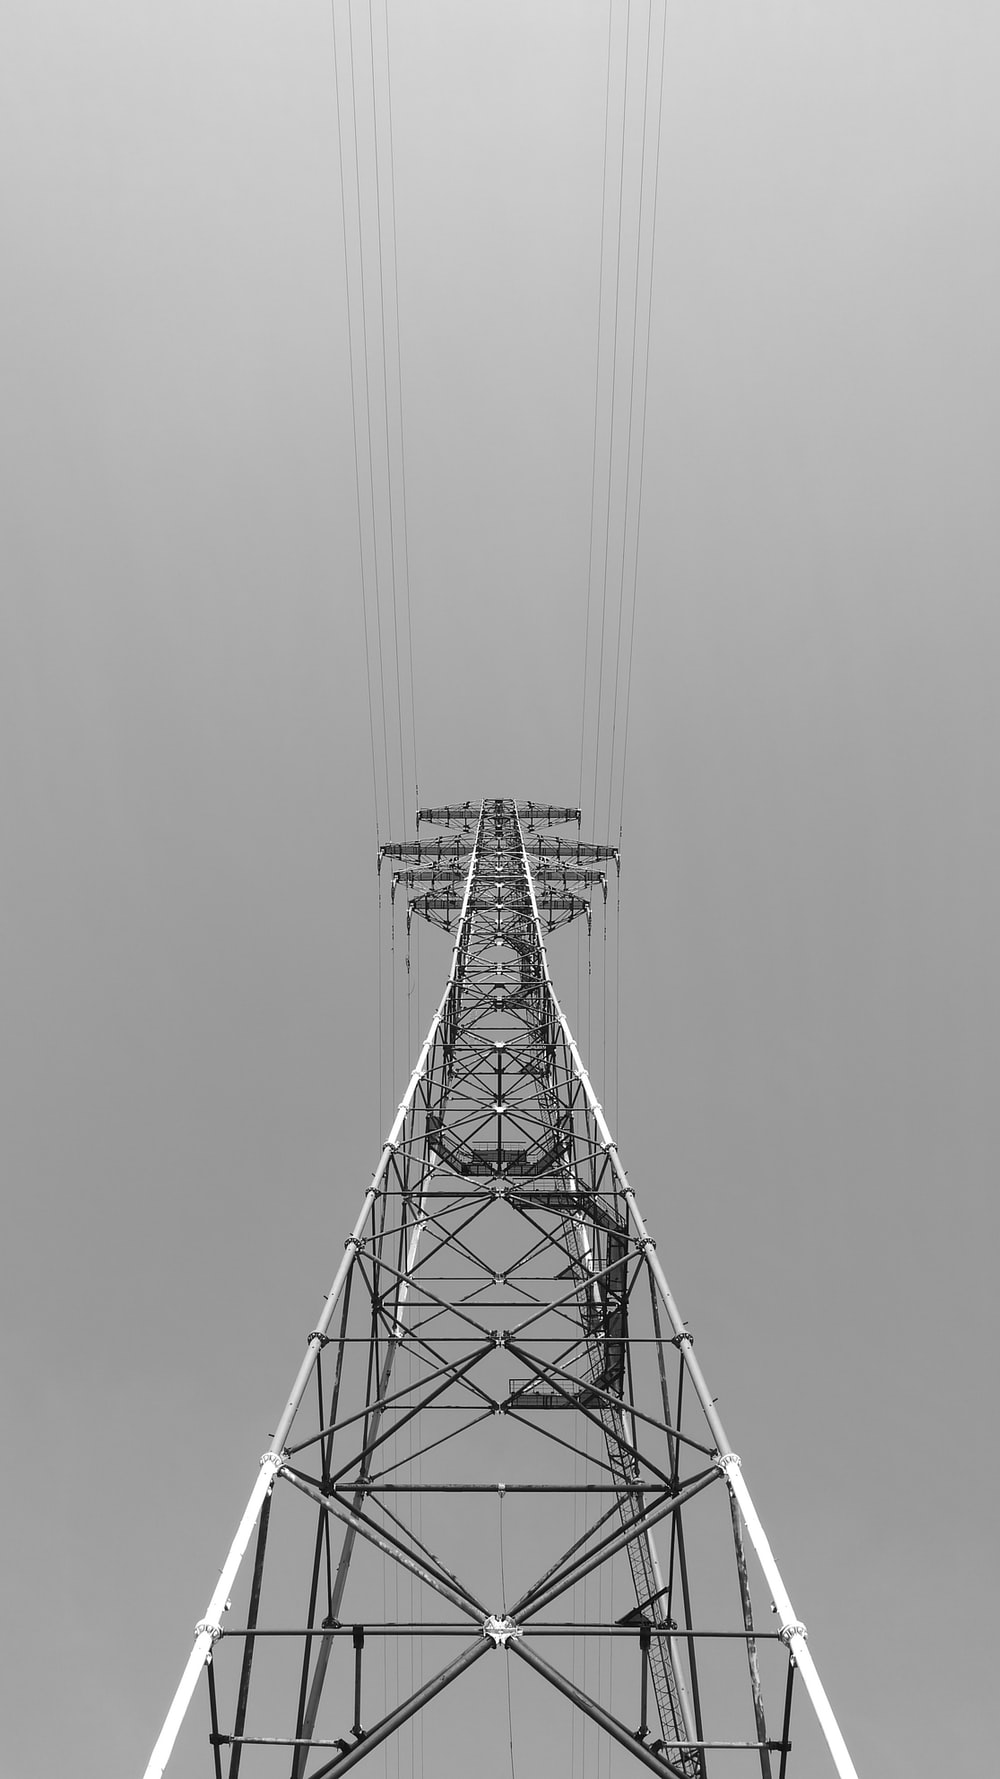 greyscale photography of metal tower